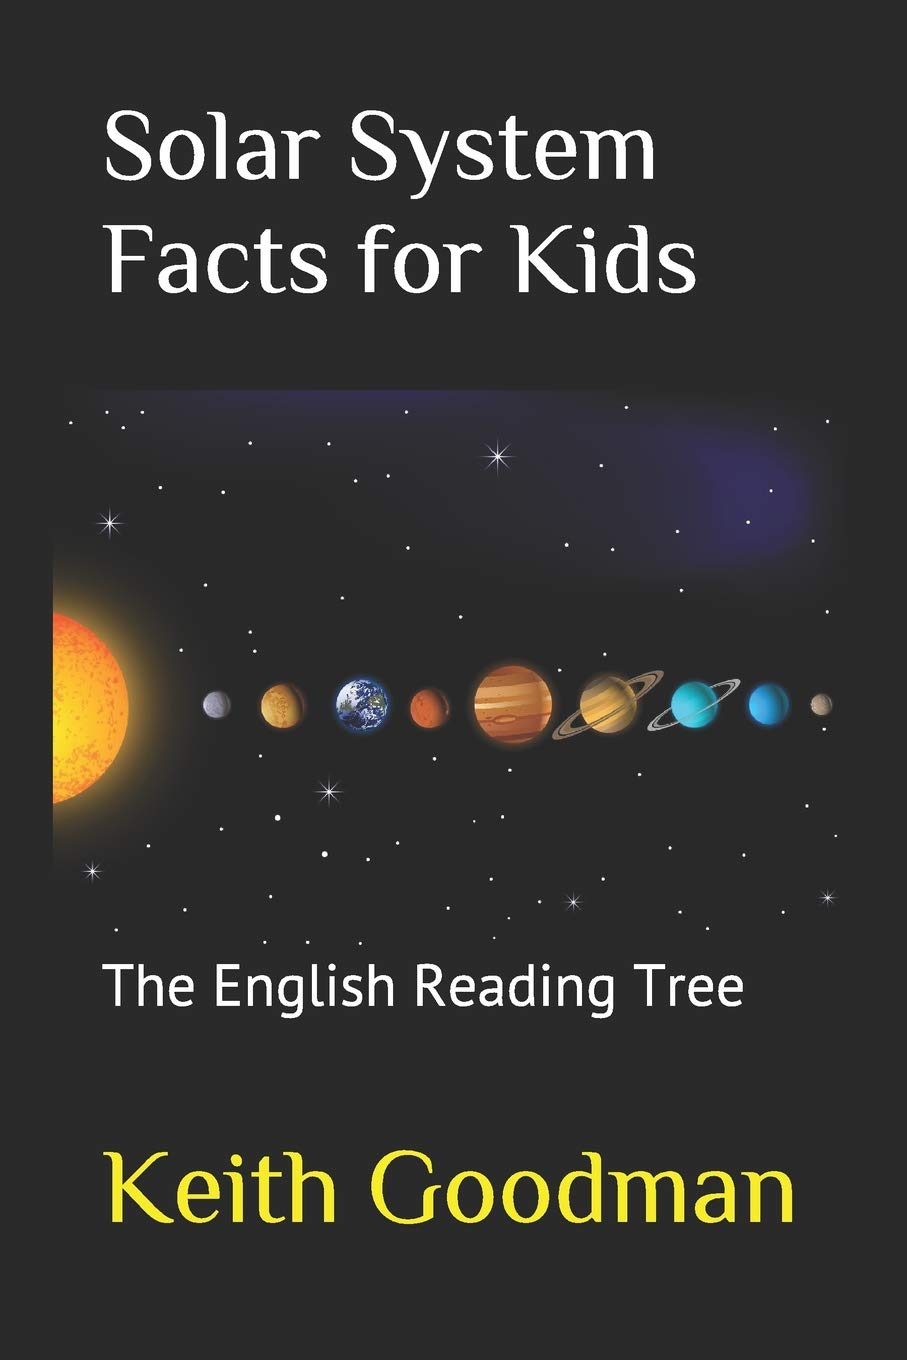 Solar System Facts for Kids: The English Reading Tree